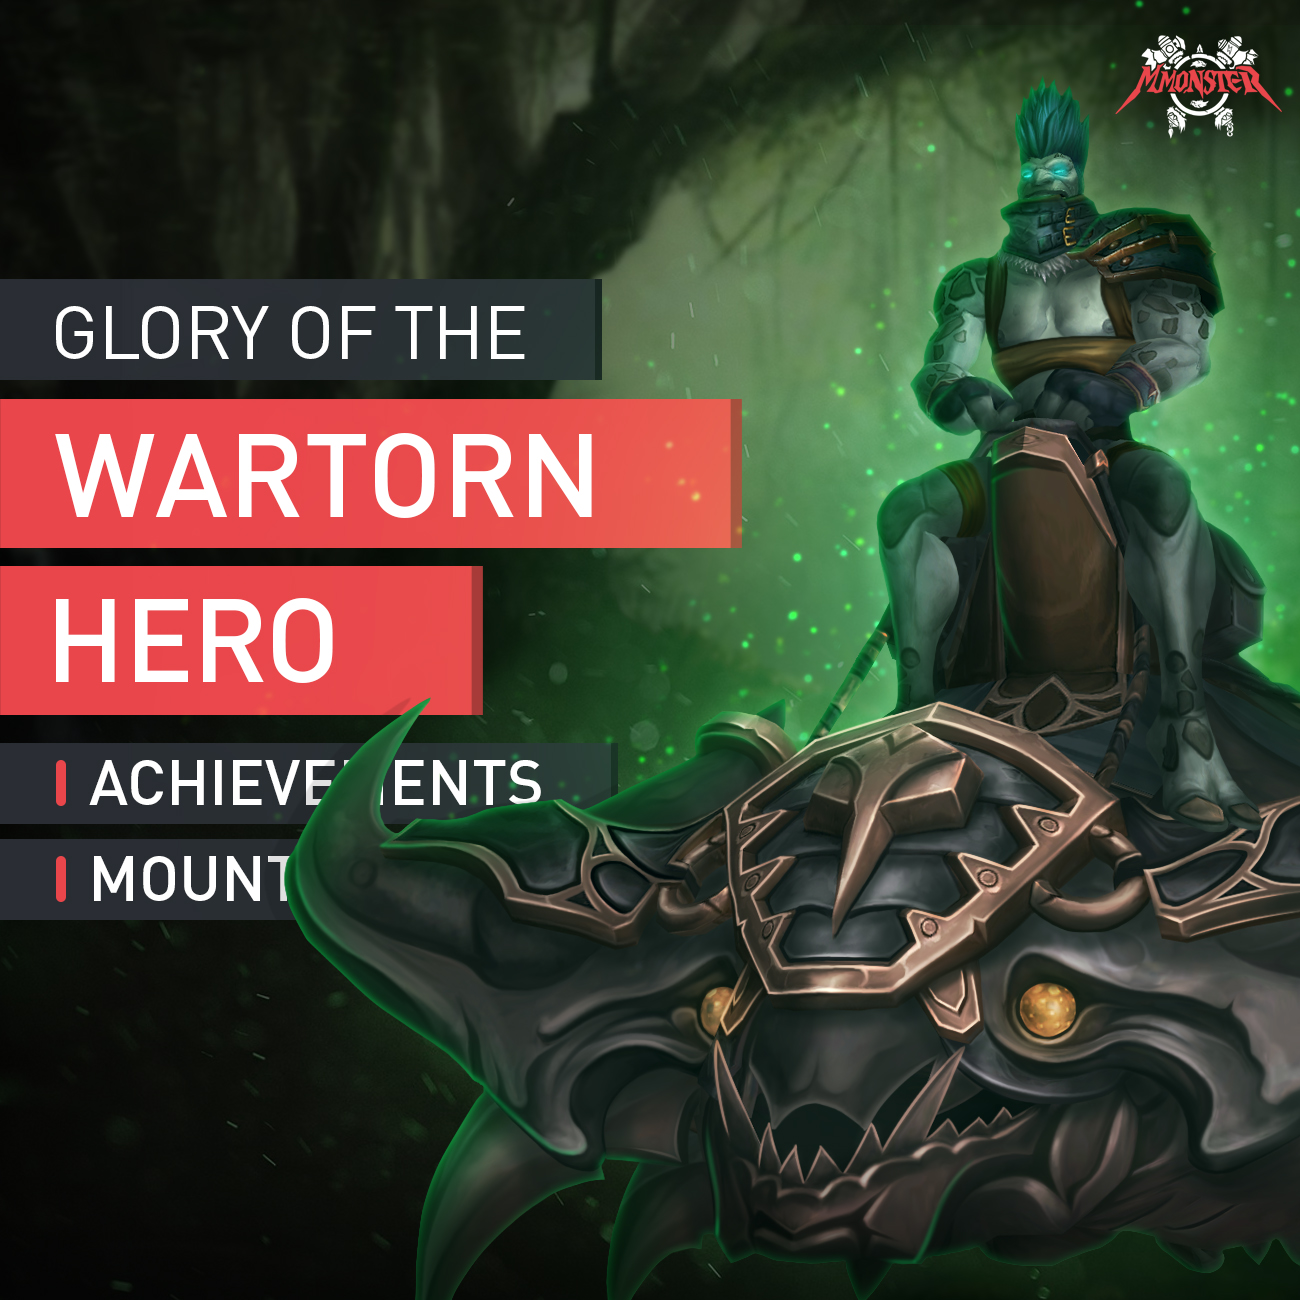 Glory of the Wartorn Hero